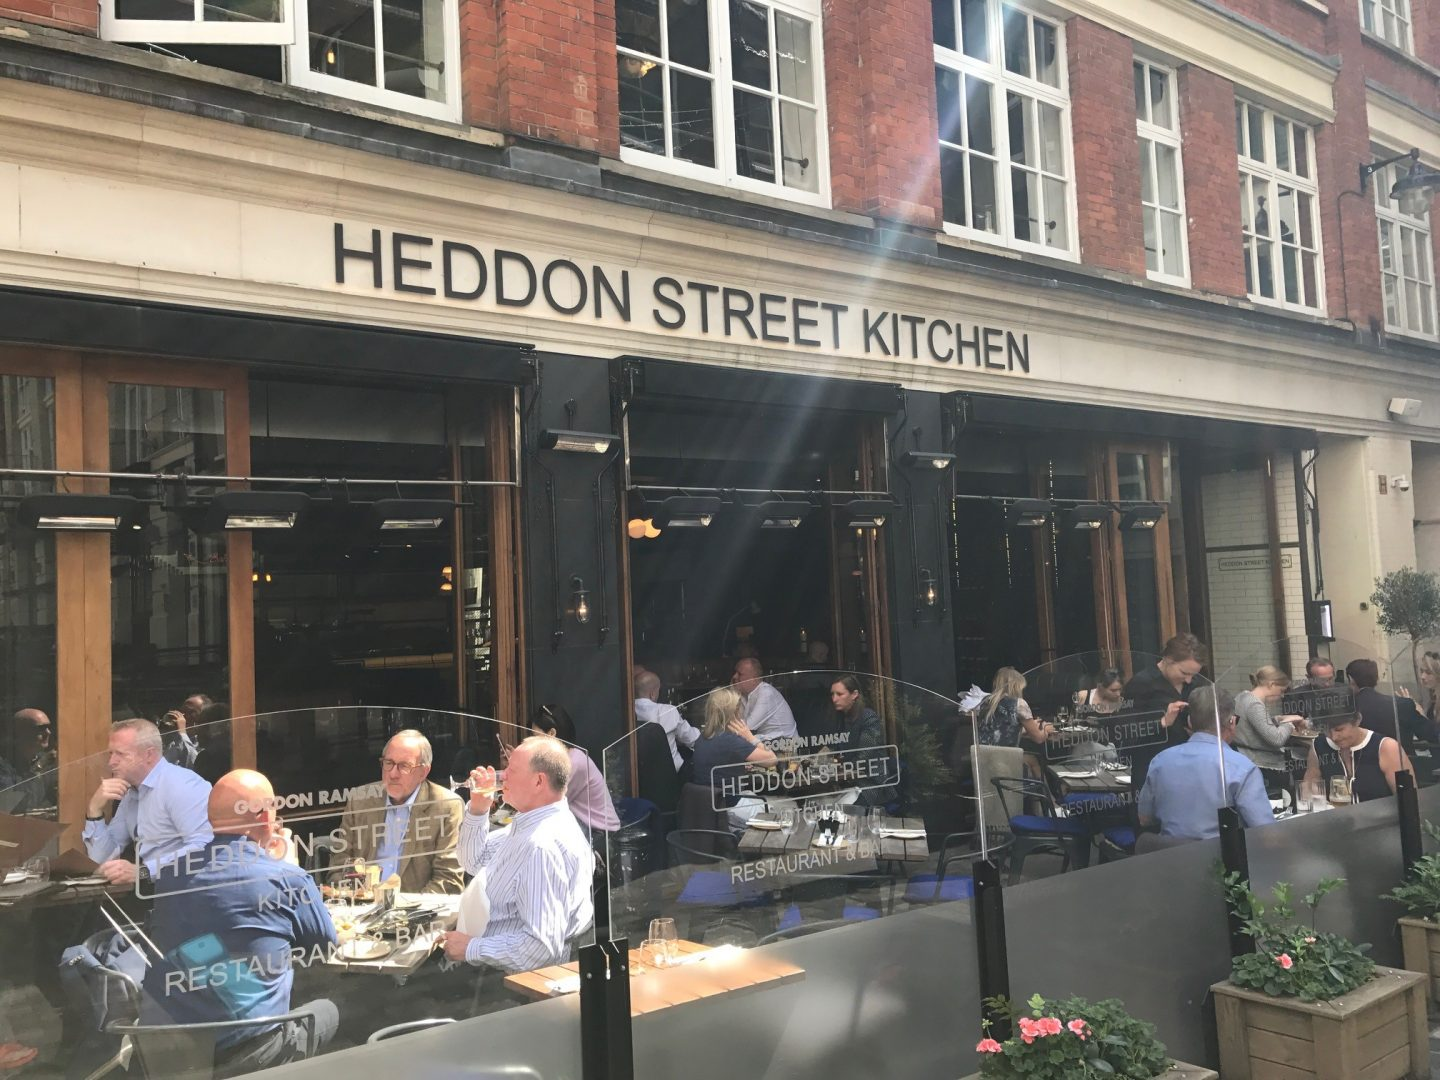 Delicious Food at Heddon Street Kitchen